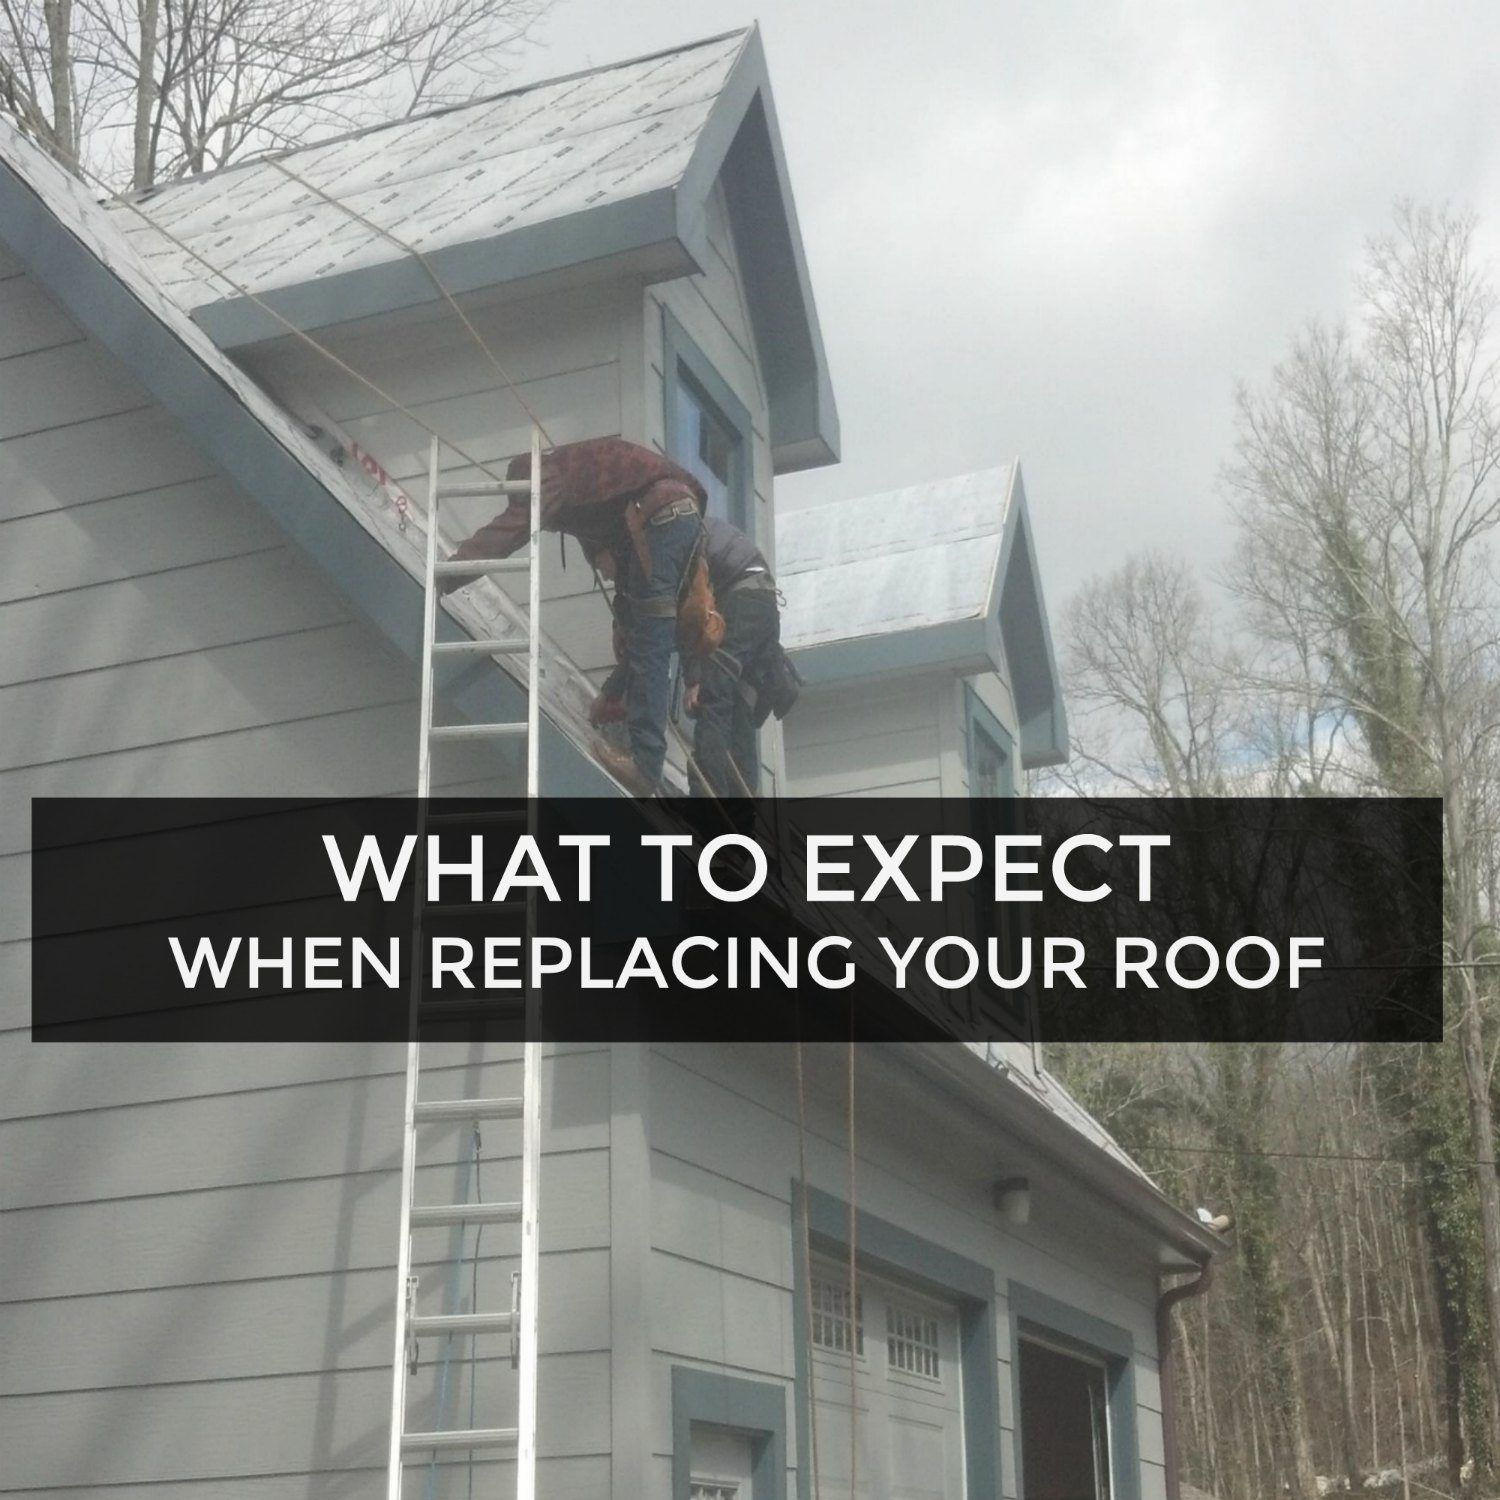 WHAT TO EXPECT WHEN REPLACING YOUR ROOF